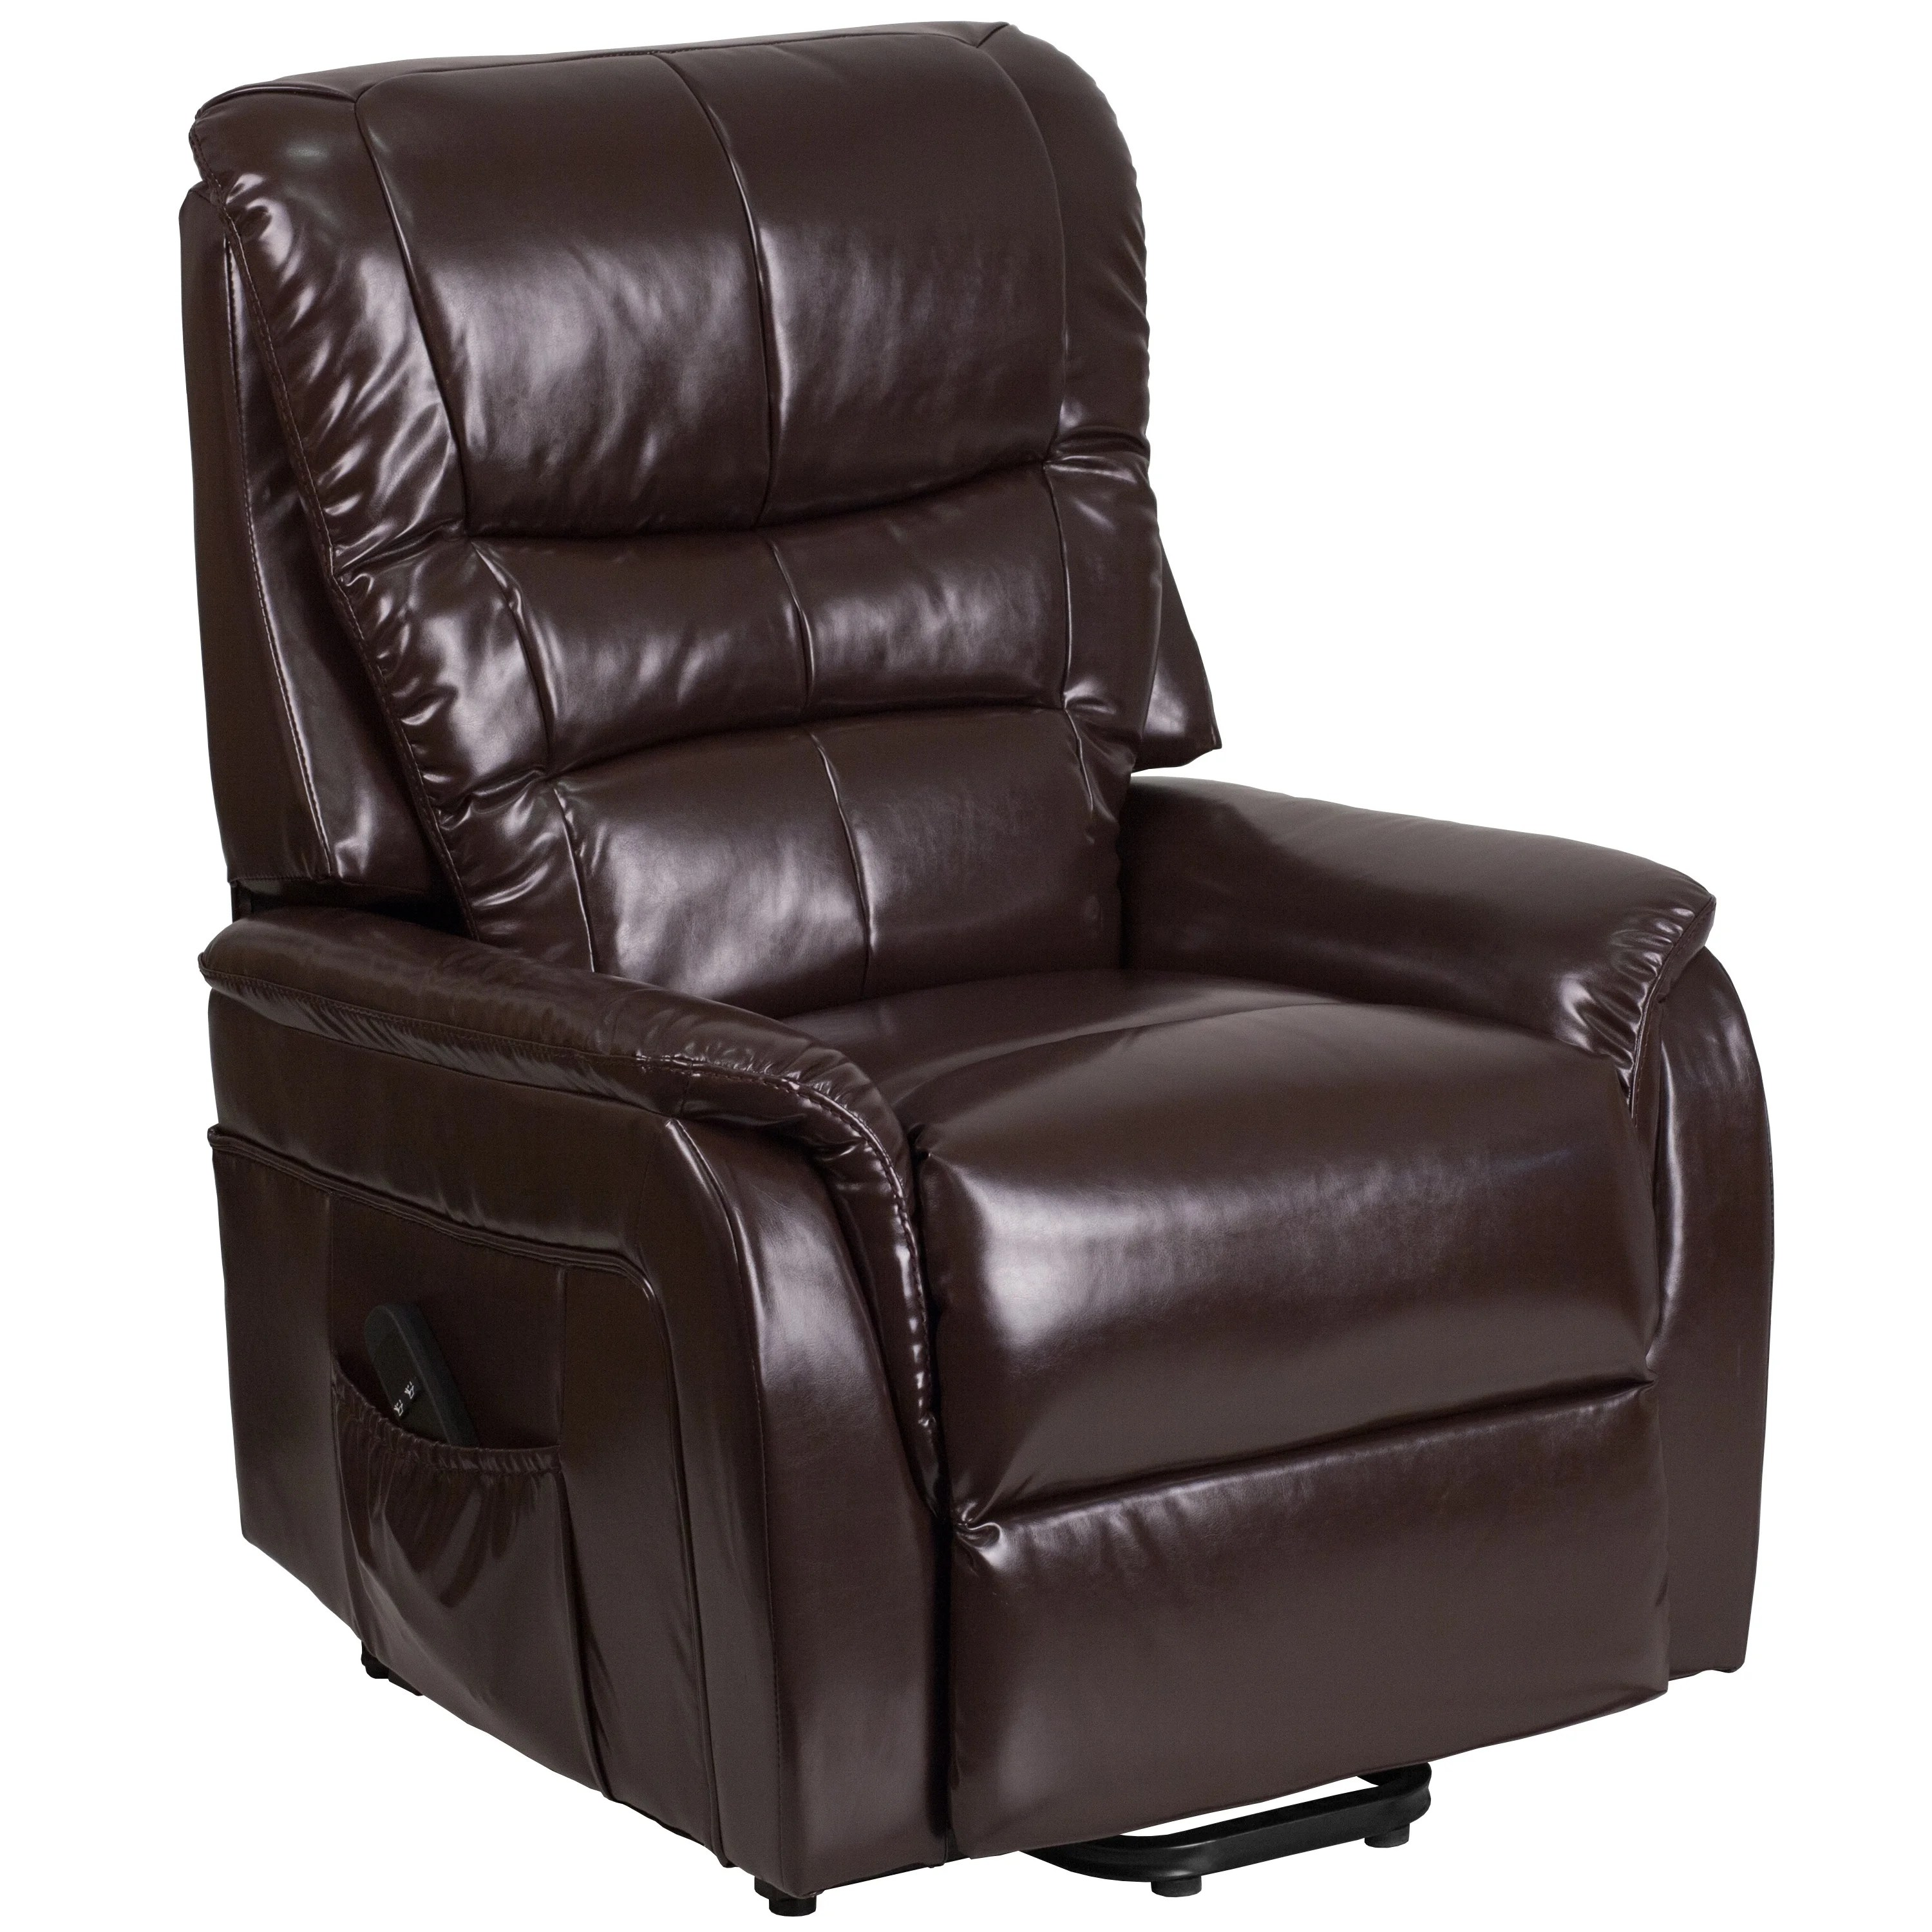 Lift Assist Chair Buy Lift Assist Recliner Chairs Rocking Recliners Online At